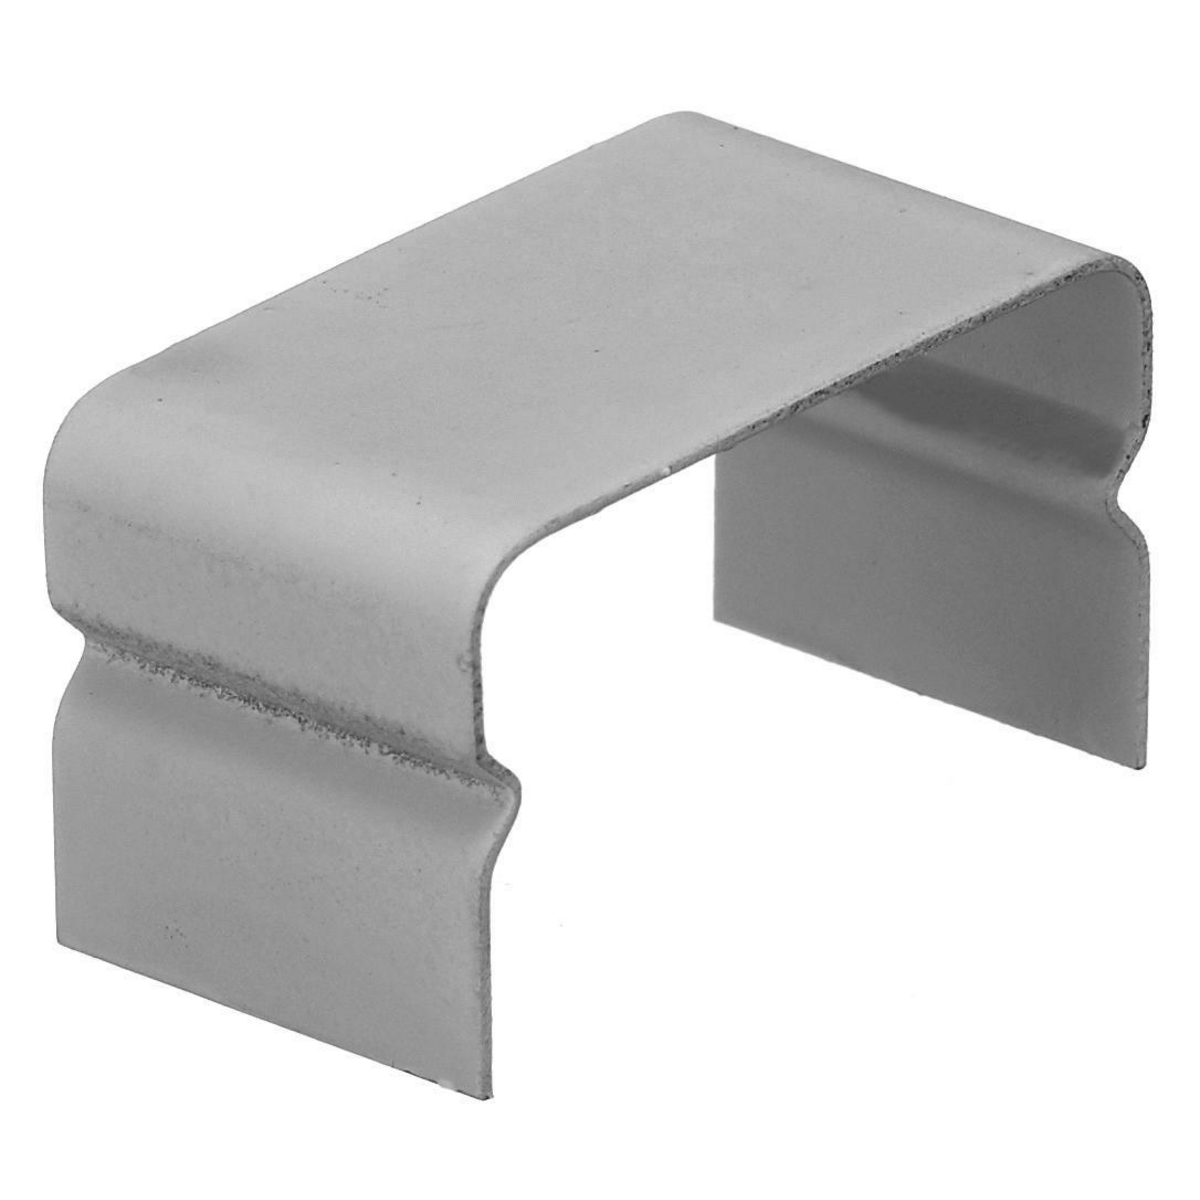 HUBHBL2006GY RACEWAY, COVER CLIP, HBL2000 SERIES, GY ,HBL2006GY, HUBBELL